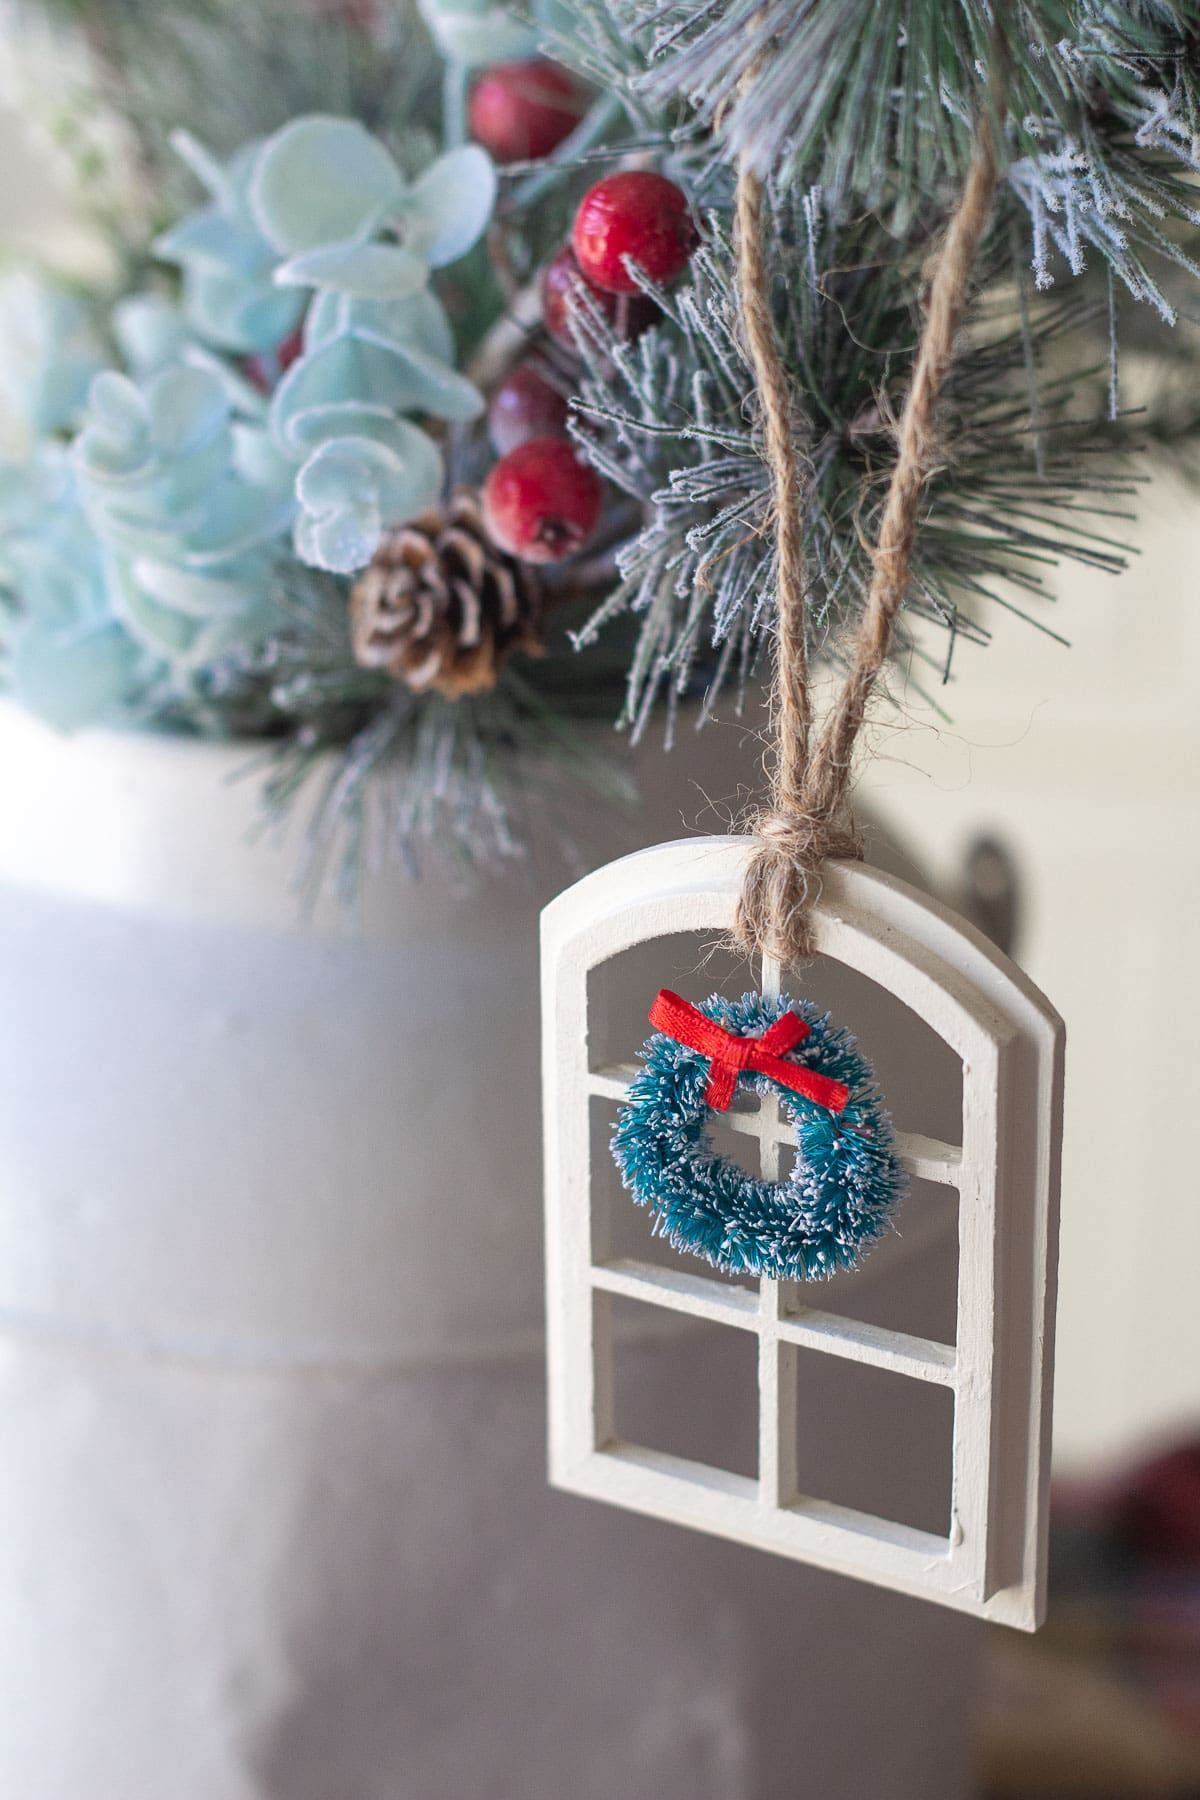 A handmade Christmas window ornament hanging from a decorative pine bough.